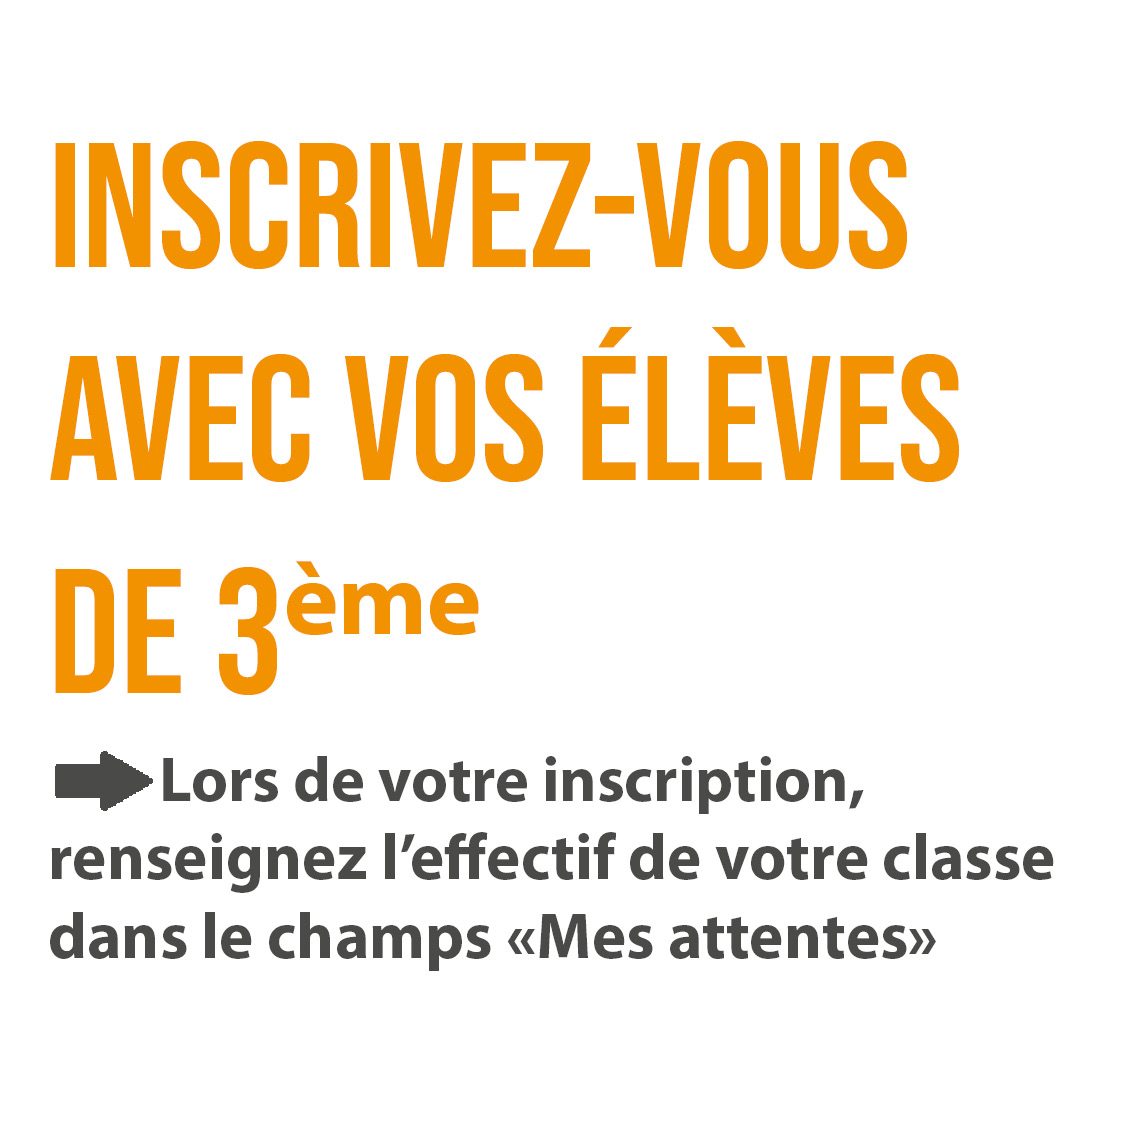 Inscription-eleves-3eme